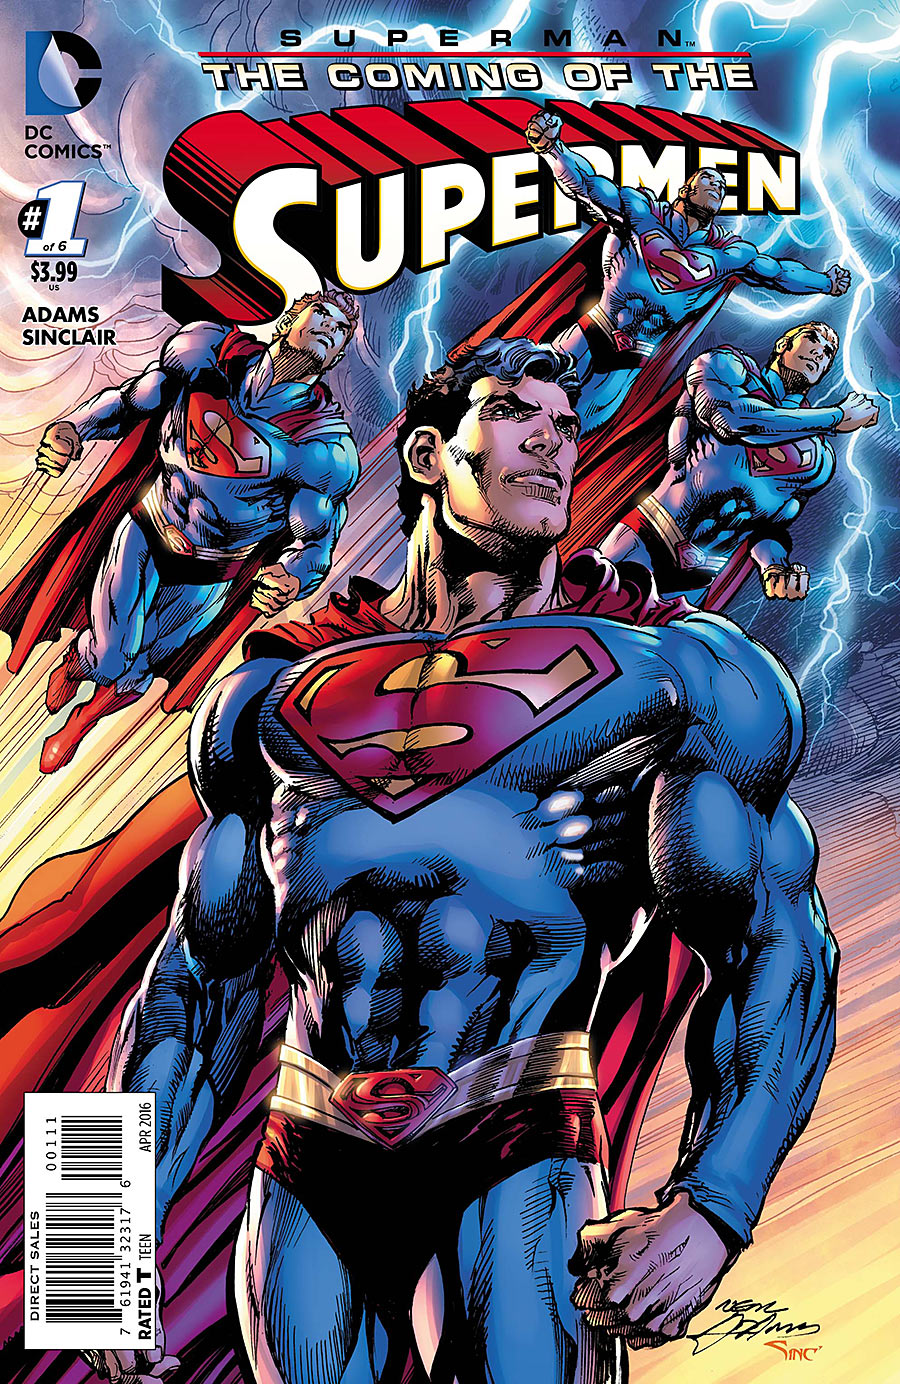 Superman: The Coming of the Supermen Vol 1 1 | DC Database | FANDOM powered by Wikia